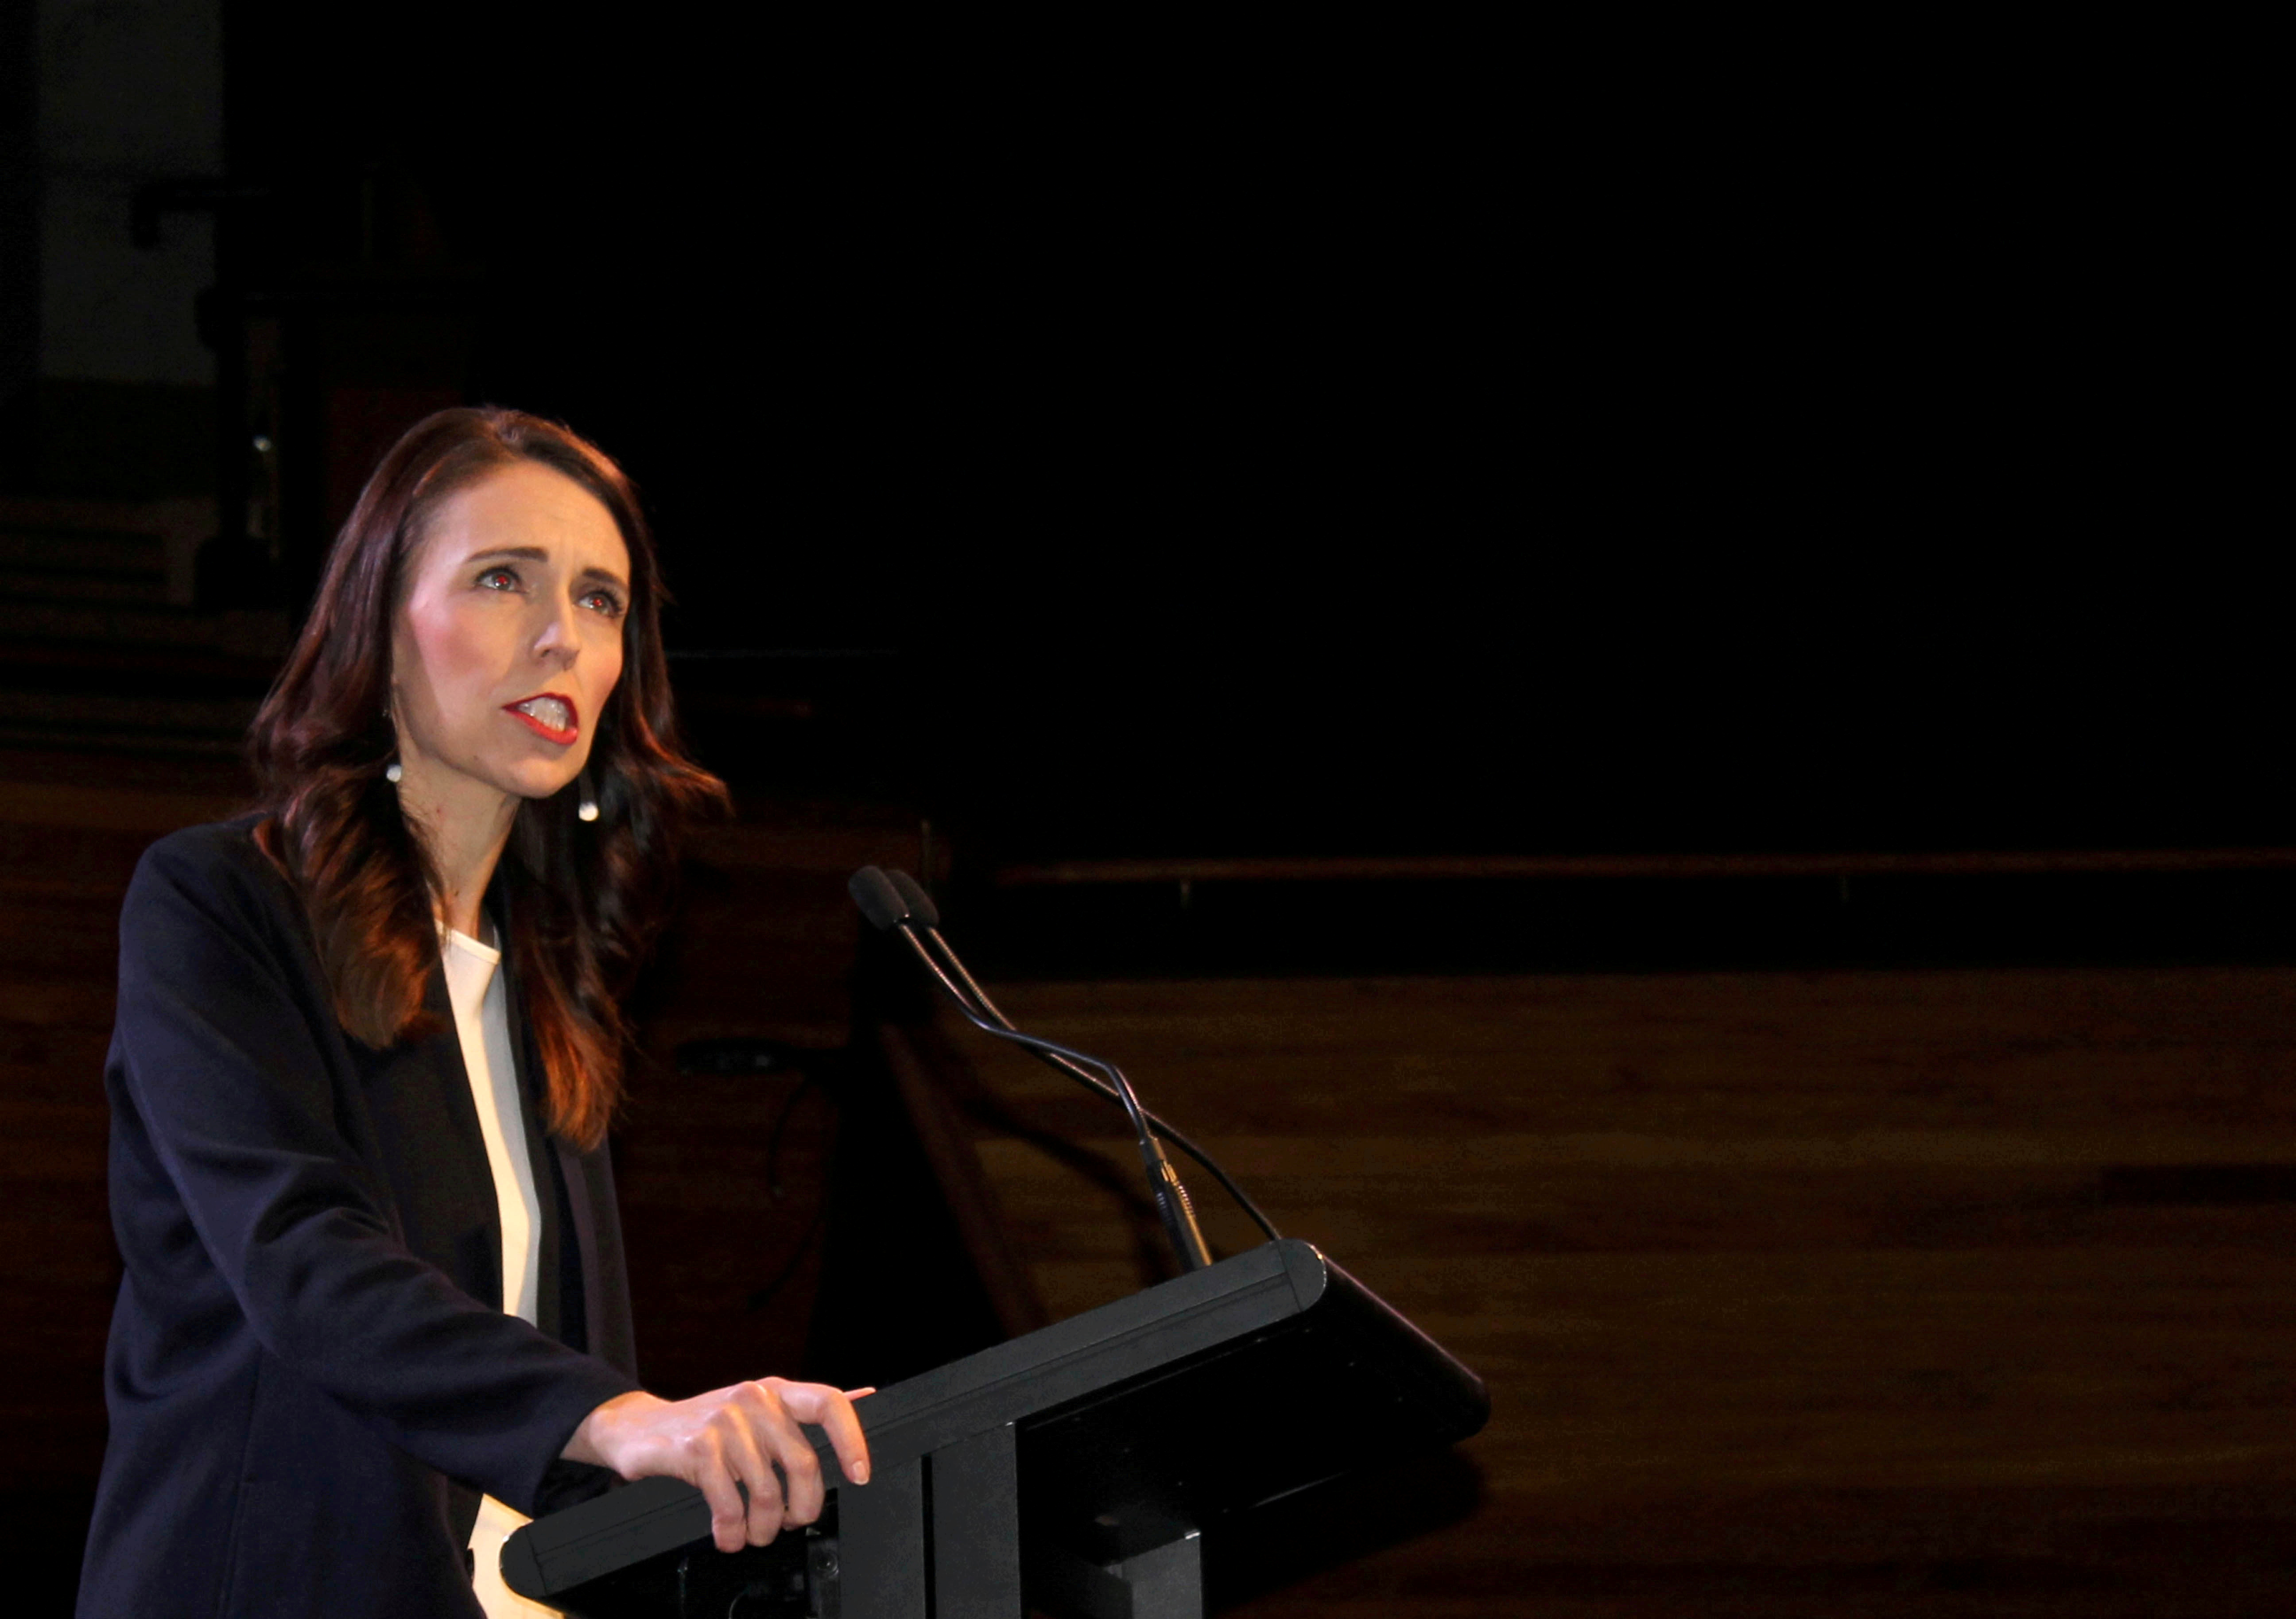 Prime Minister Jacinda Ardern addresses supporters at a Labour Party event in Wellington, New Zealand, October 11, 2020. REUTERS/Praveen Menon